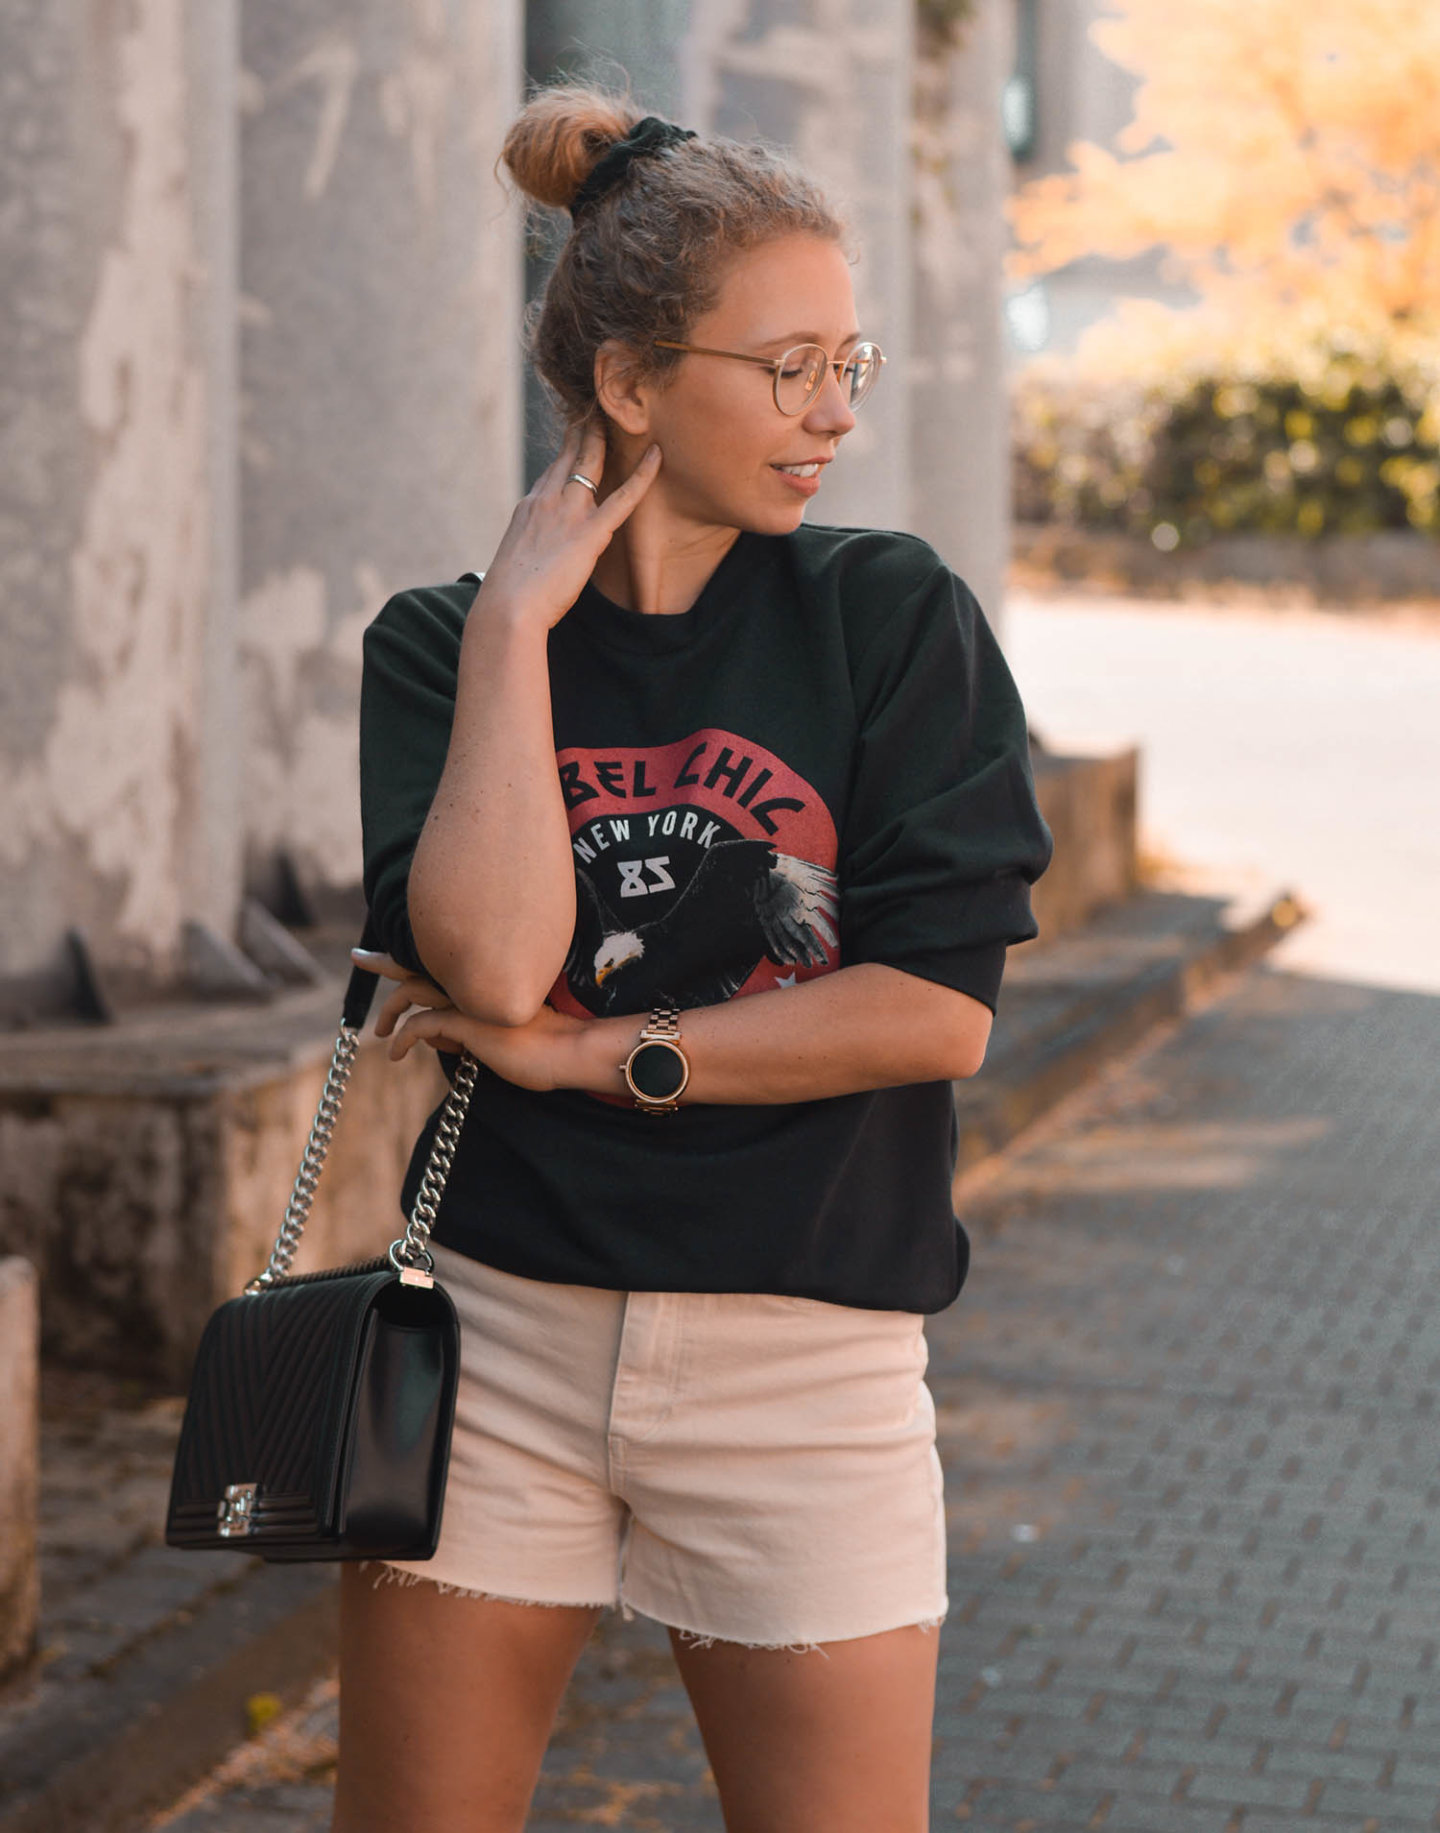 Rebel Chic Sweatshirt, Chanel und Shorts